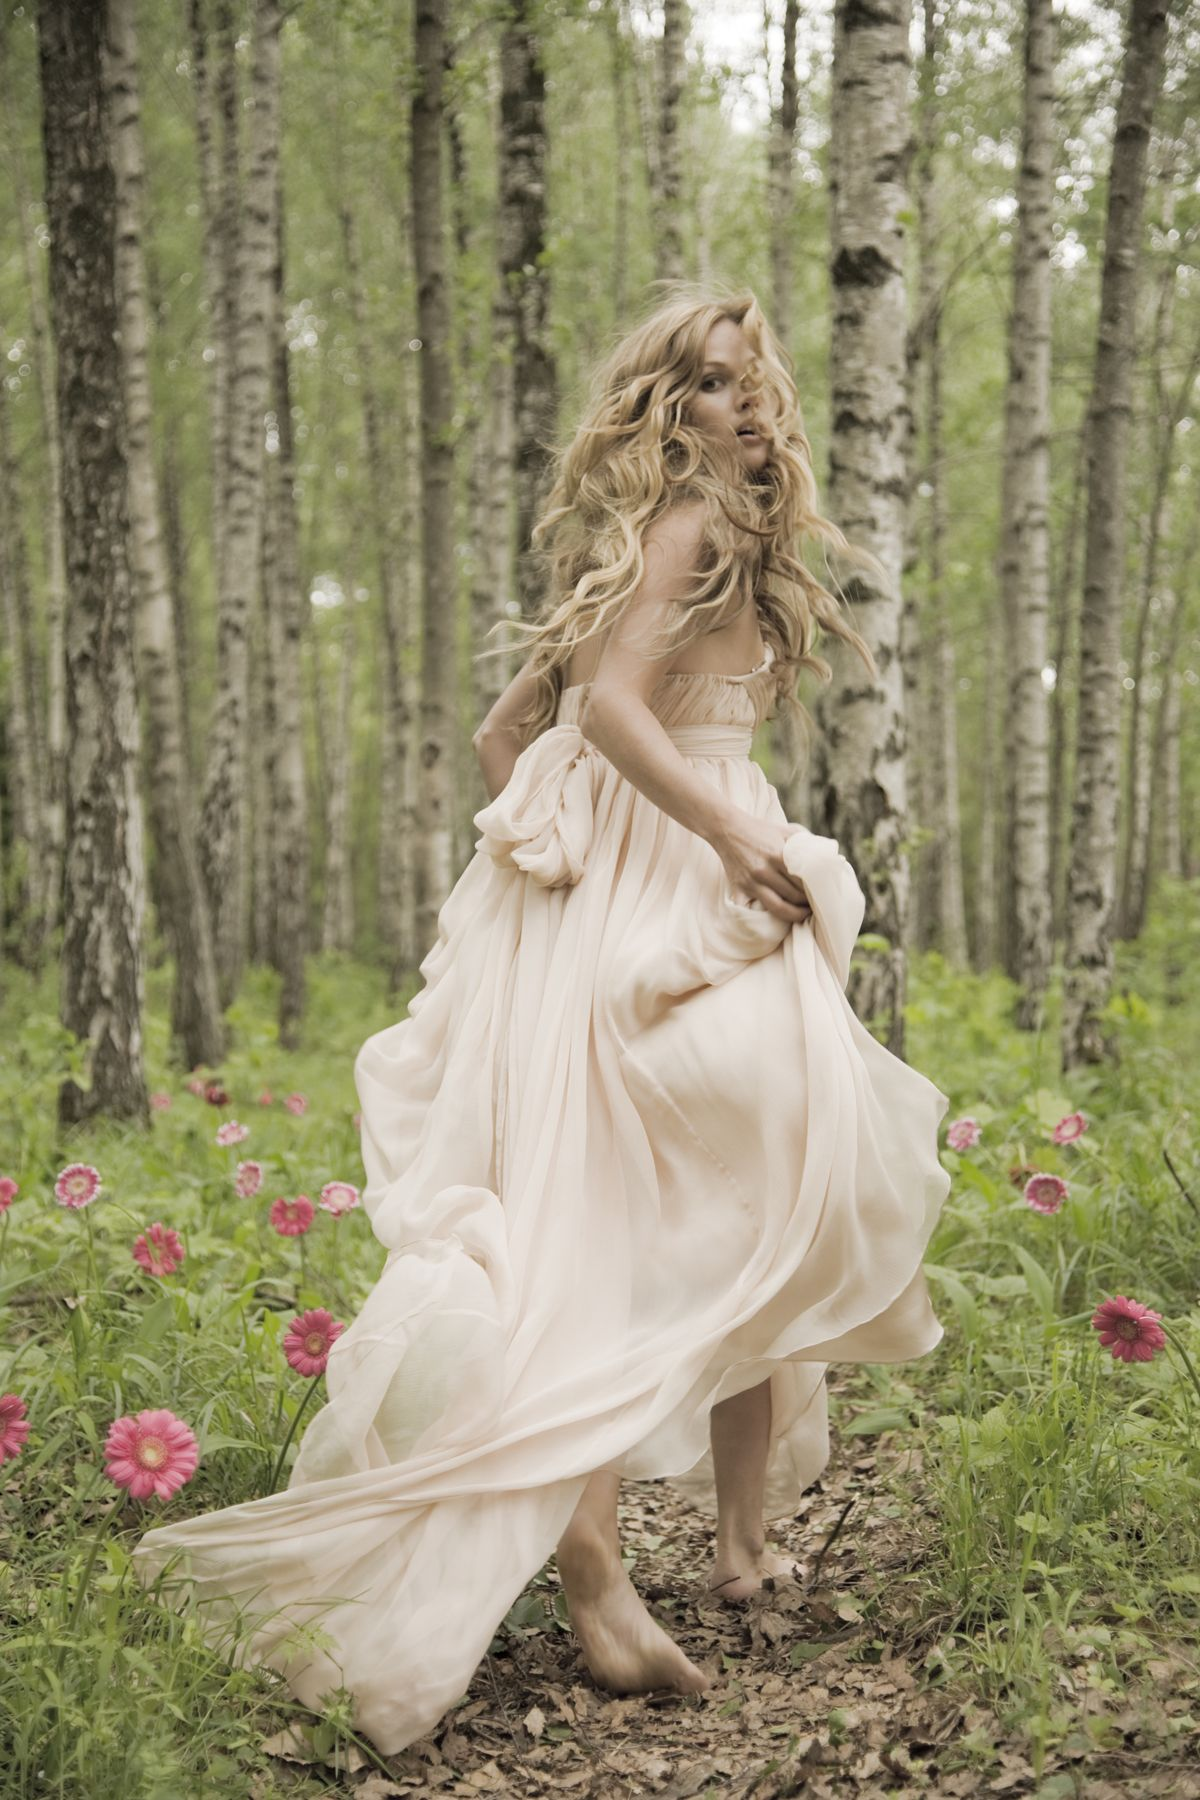 new concept 048d1 19cee Leila Hafzi Sustainable Bridal Collection | Inspiration ...